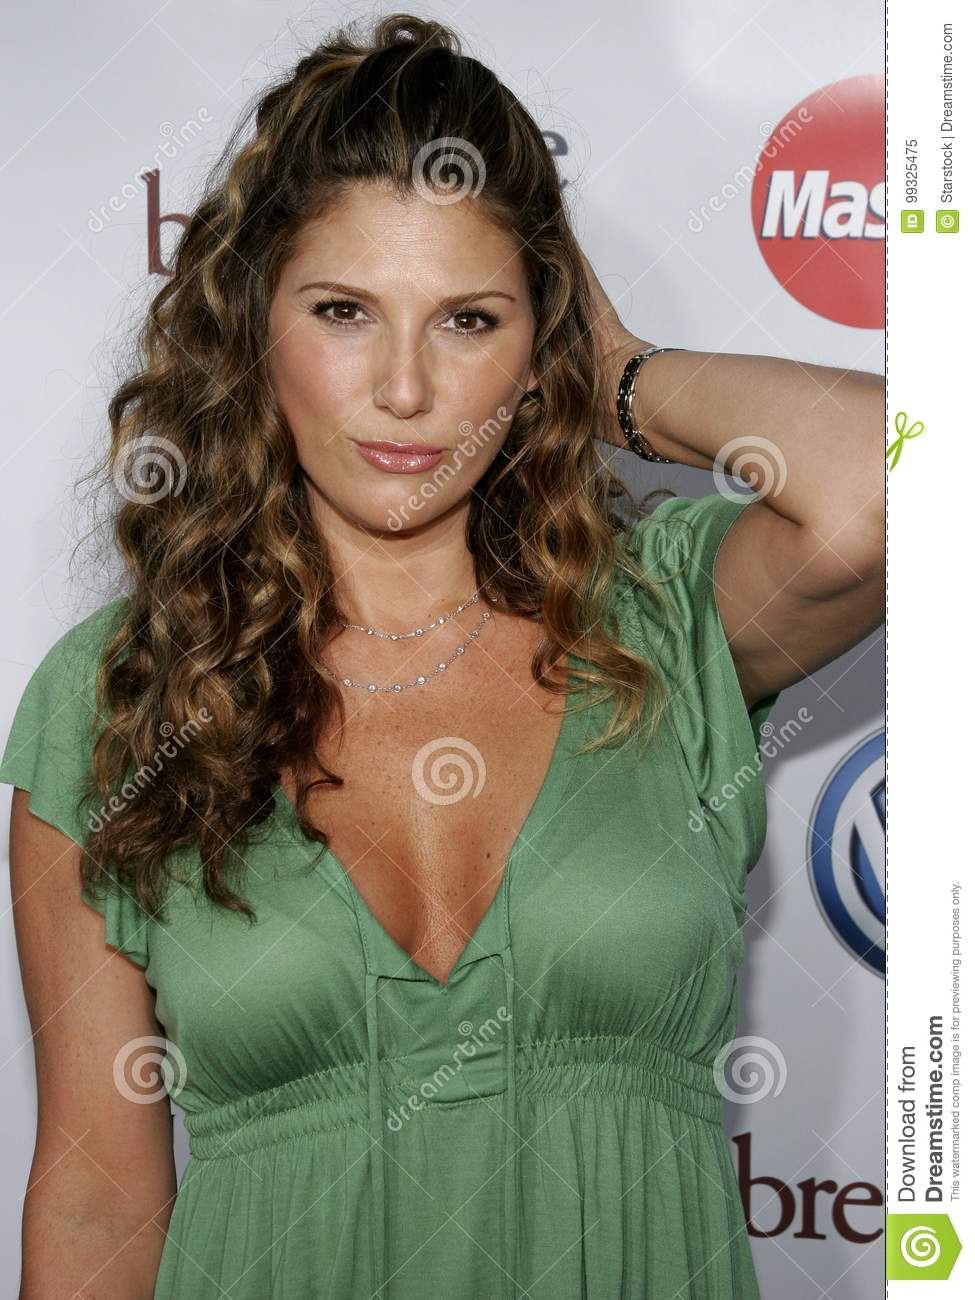 Daisy Fuentes Daisy Fuentes new picture